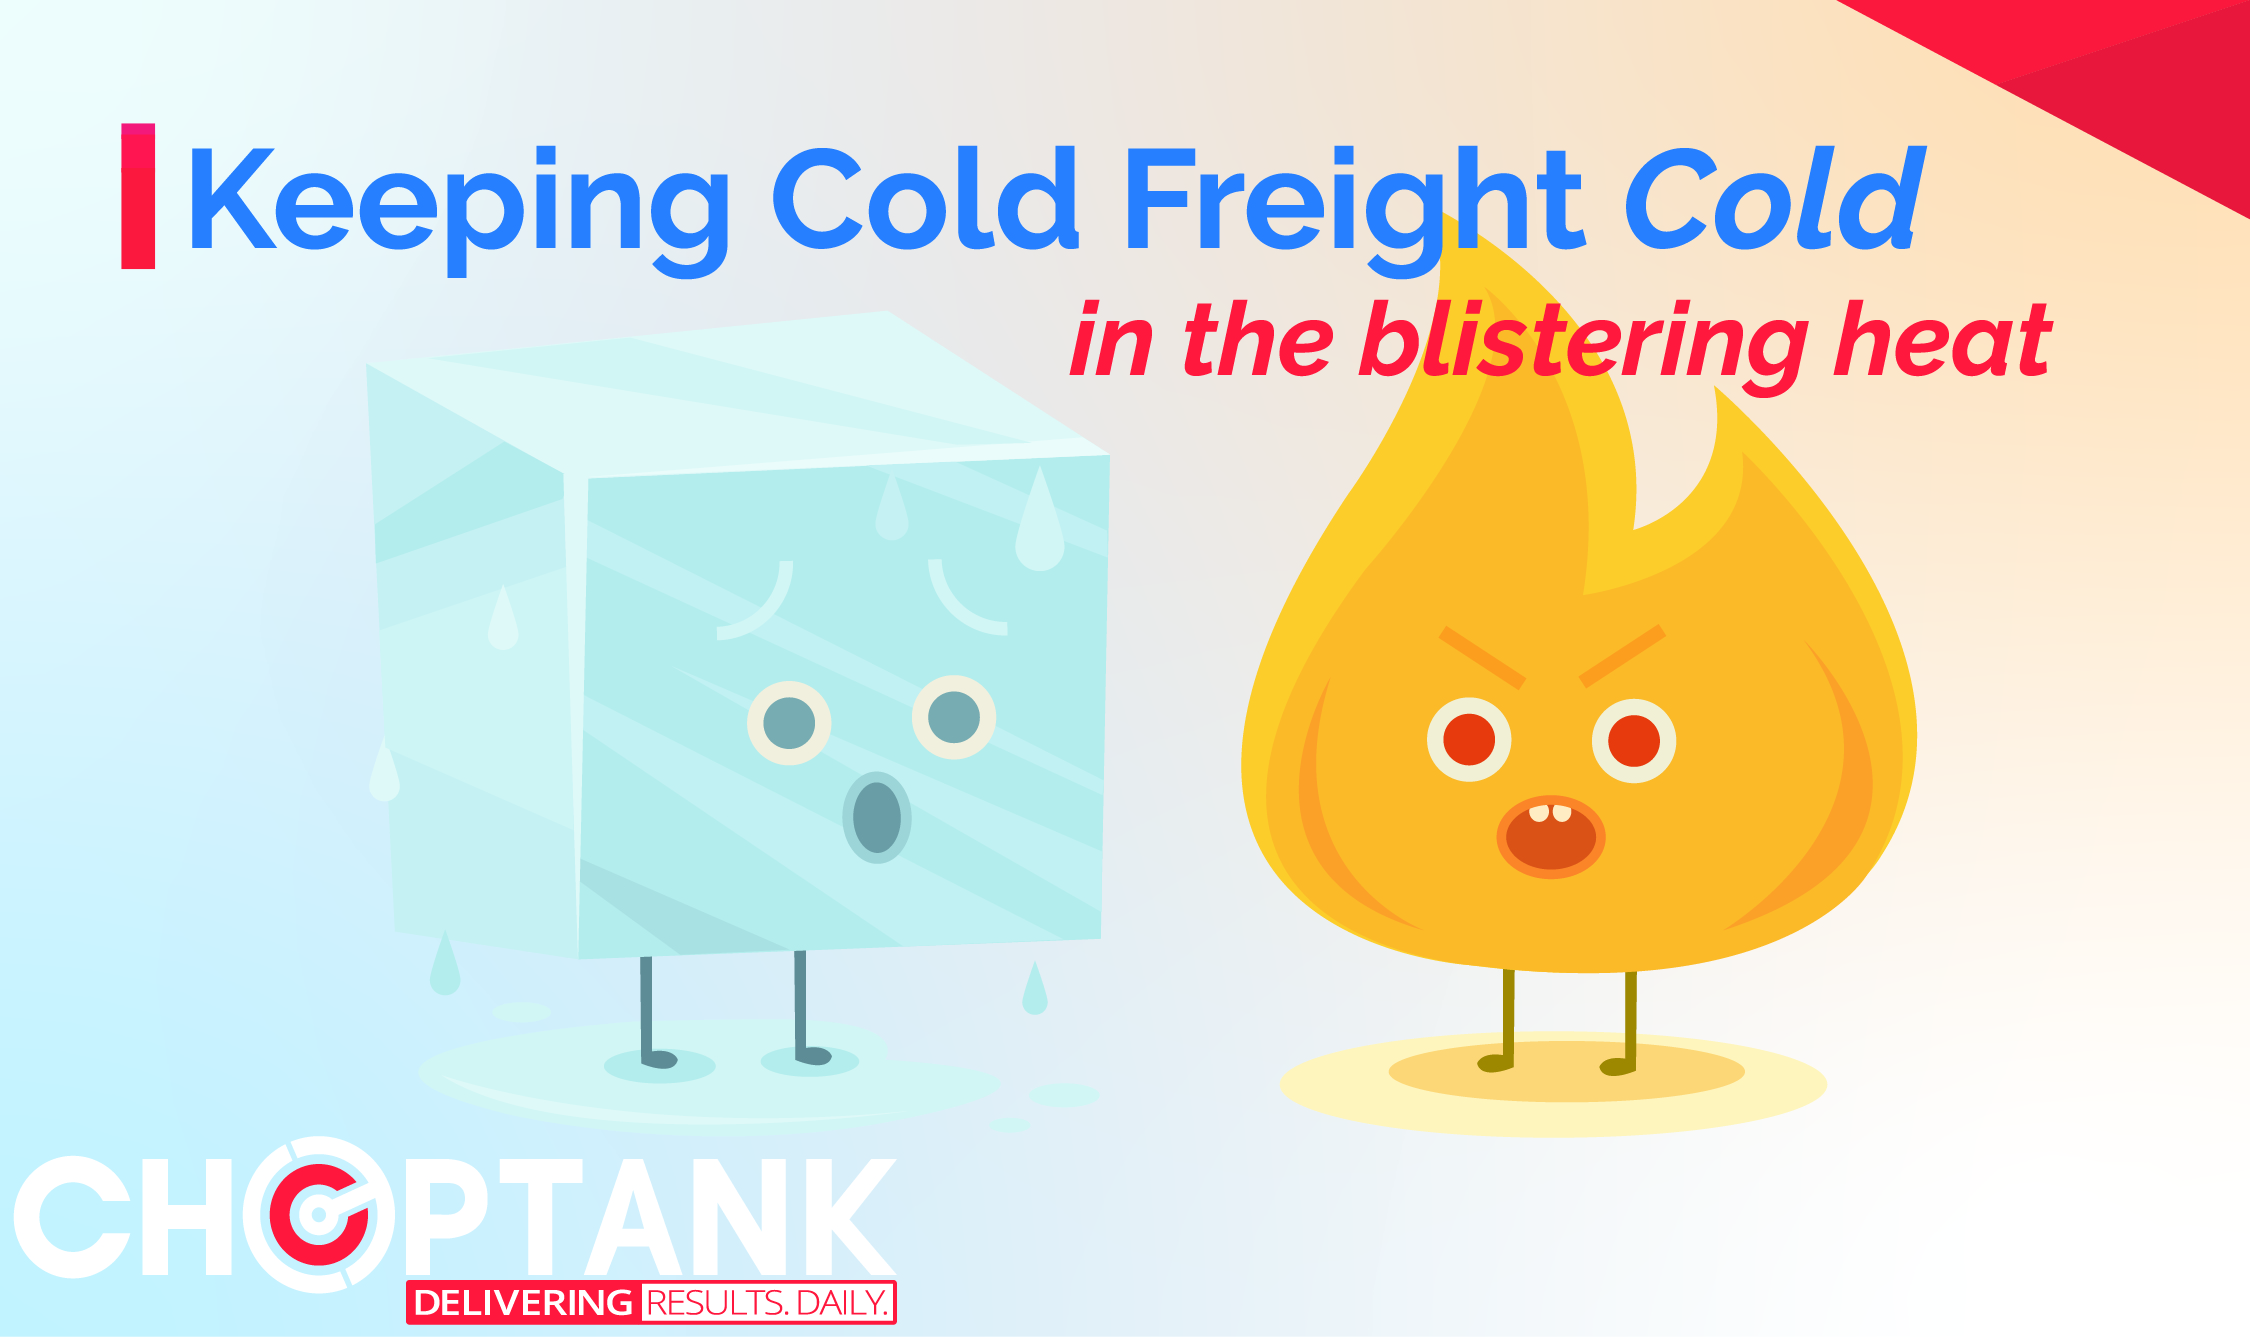 coldfreight2